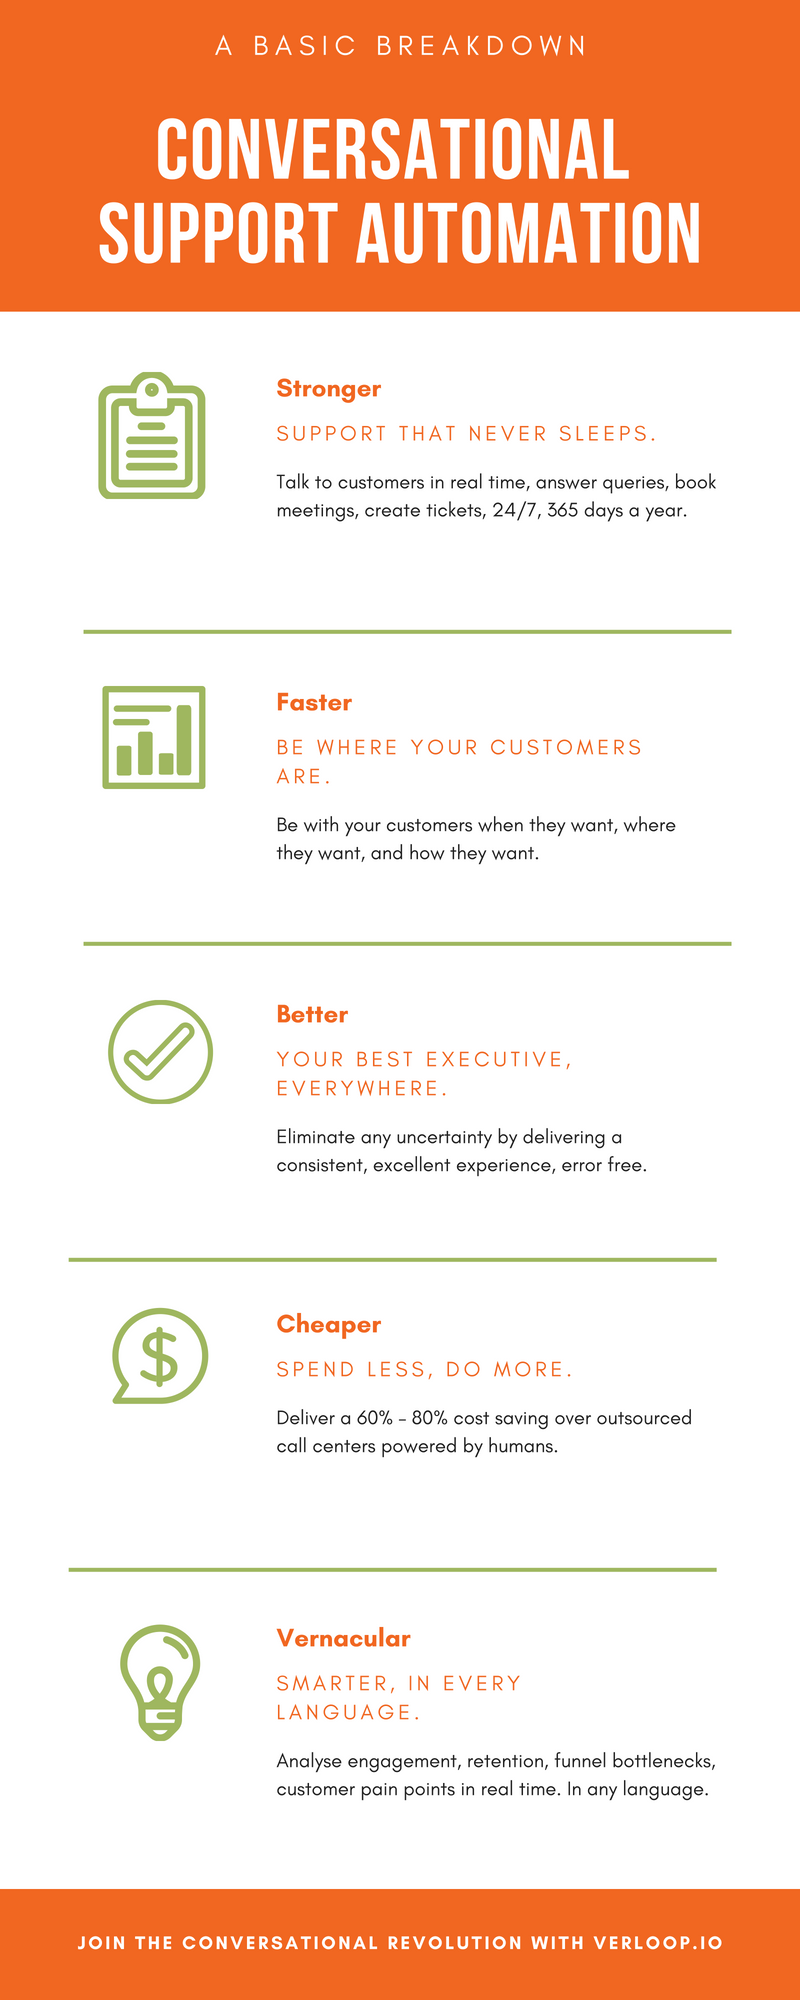 conversational support automation infographic